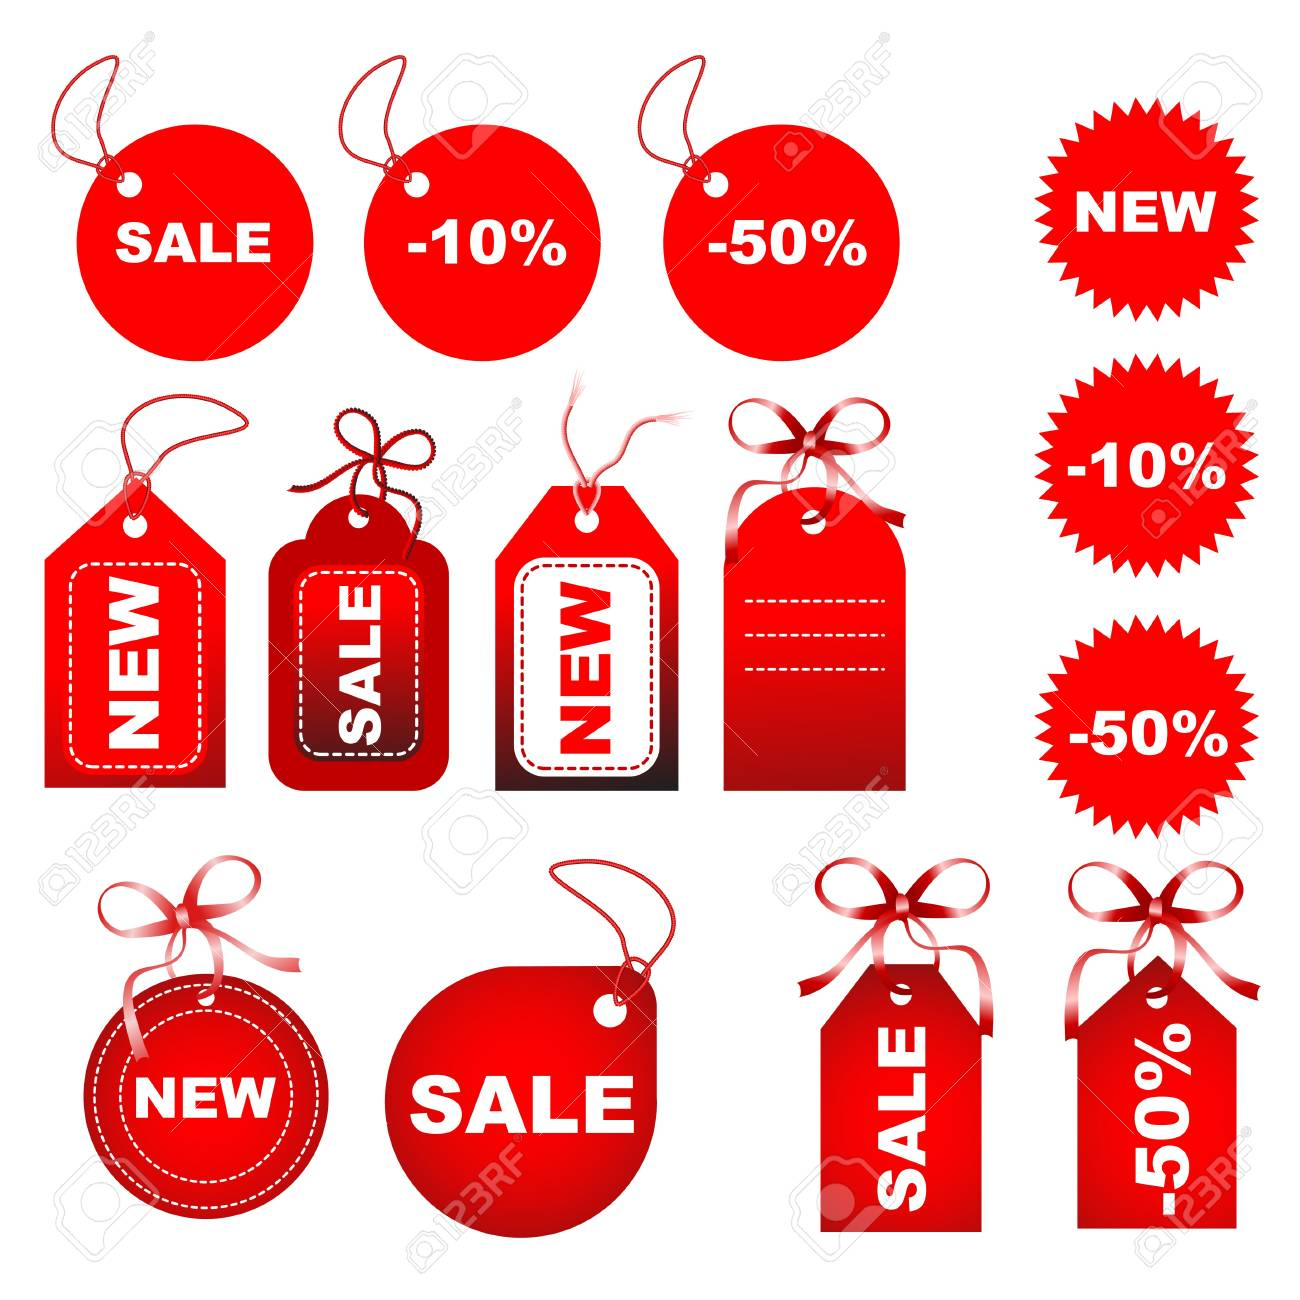 set of tags fully editable vector illustration Stock Illustration - 4394589